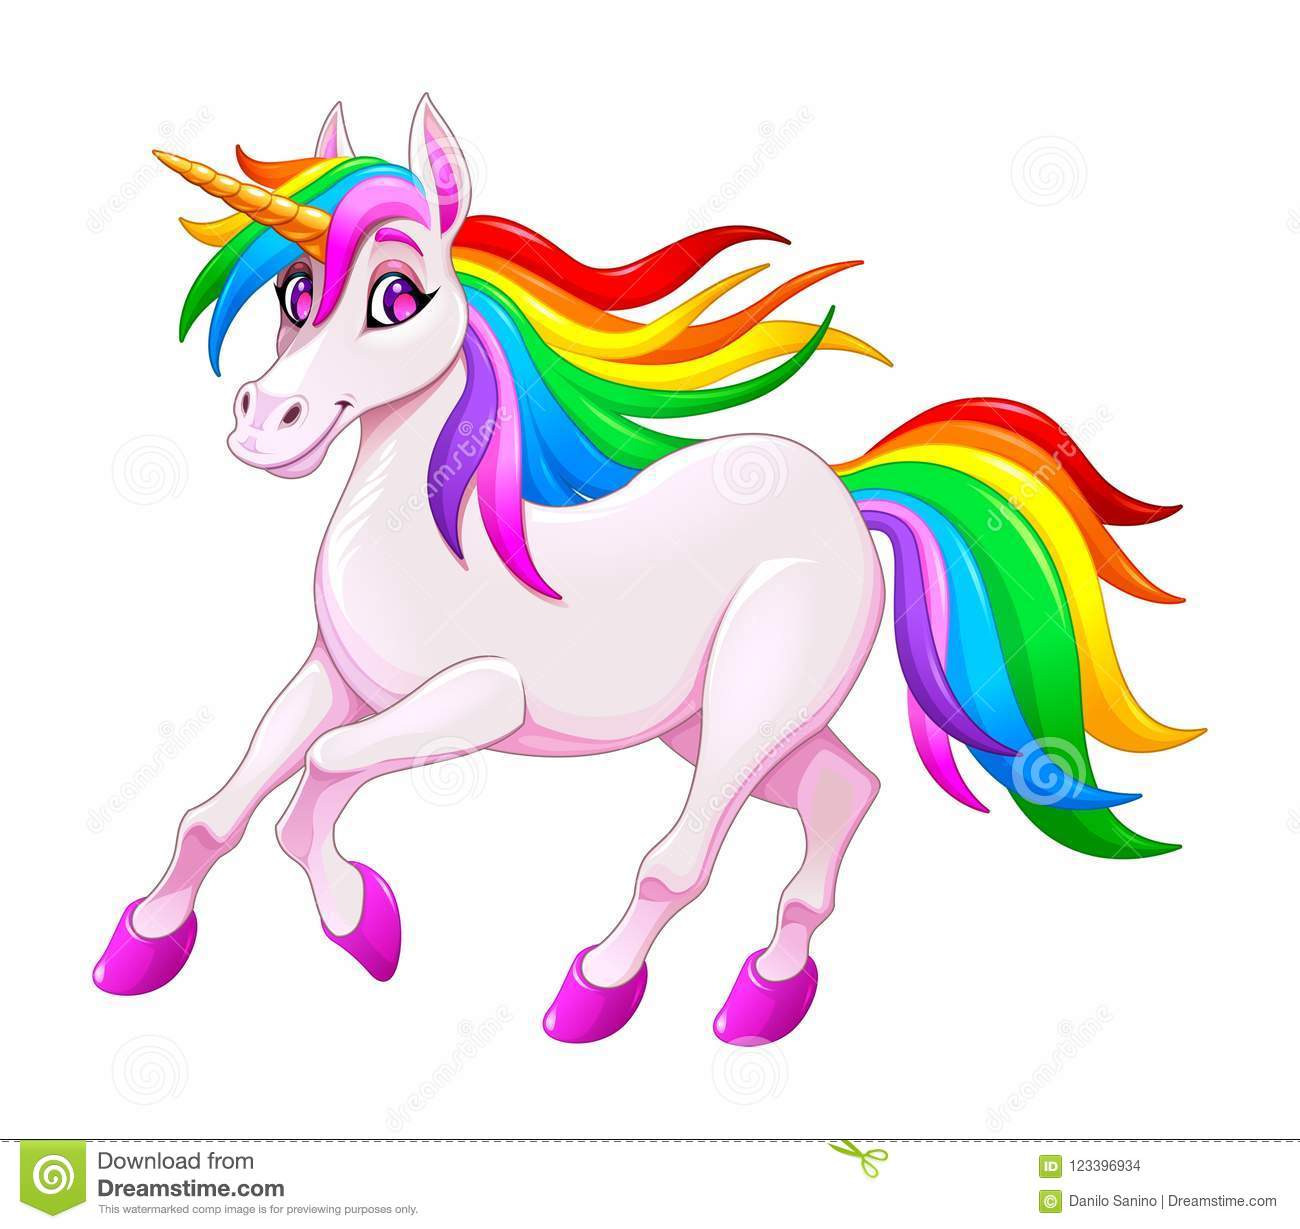 Cute rainbow unicorn stock vector. Illustration of pony ...